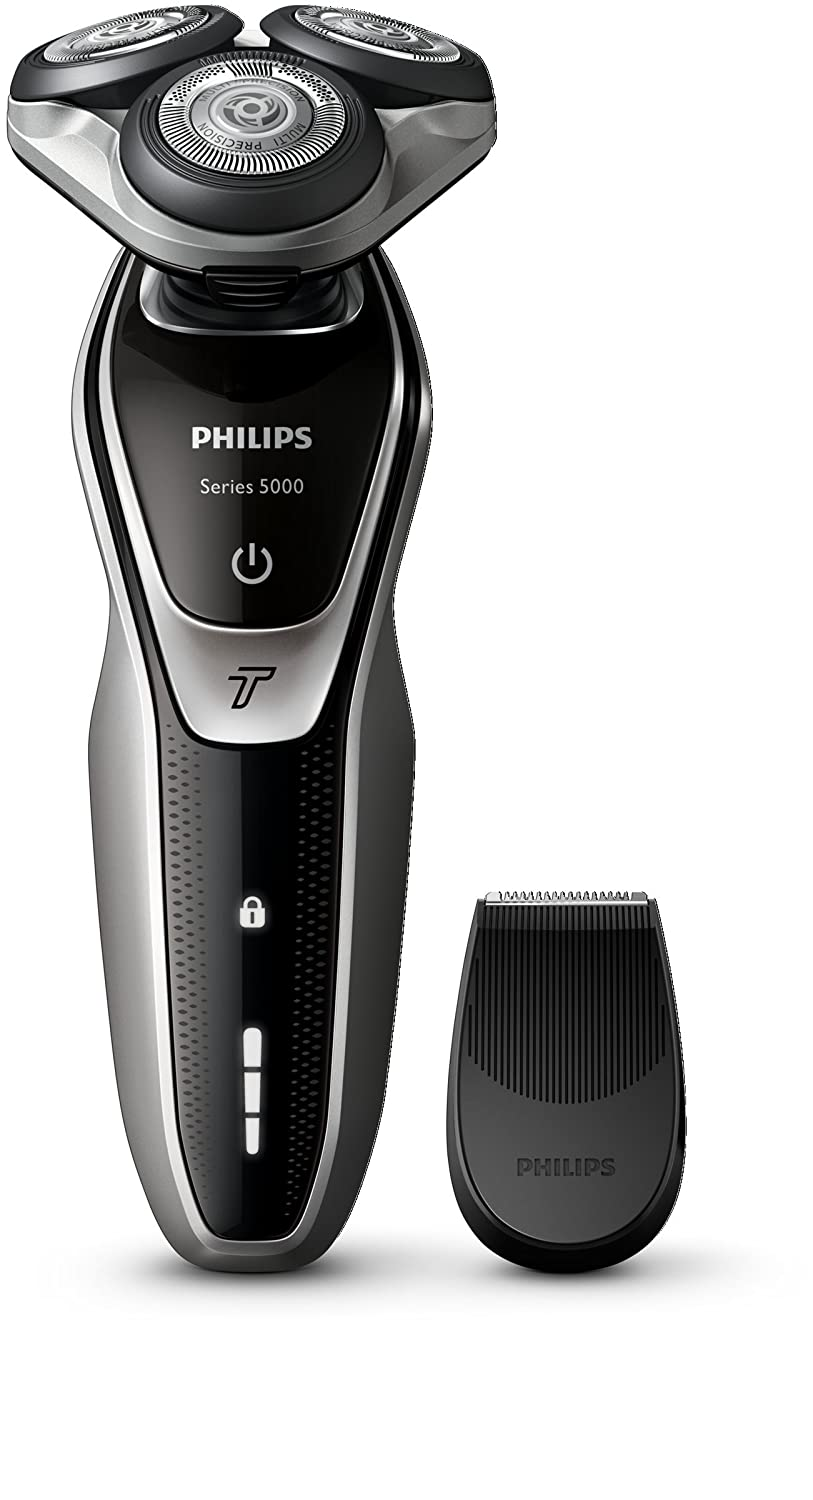 Philips Series 5000 Wet And Dry Shaver S5361/08